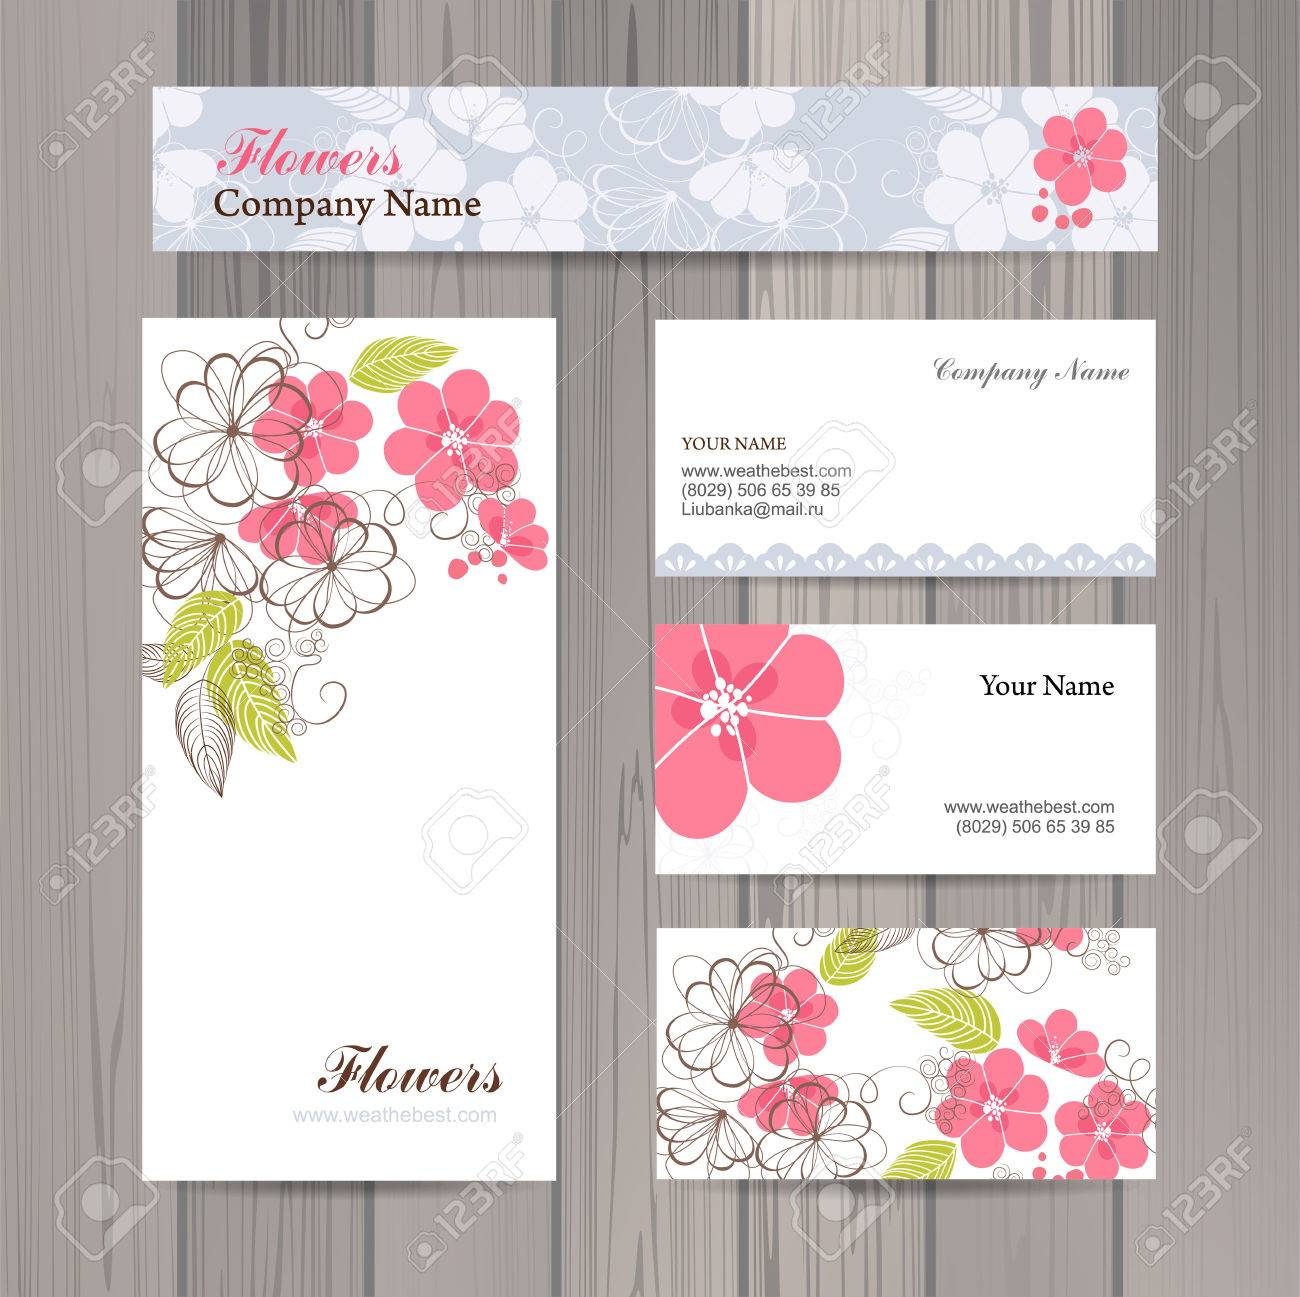 Set Of Business Card And Invitation Card Template Vector - Wedding business card template